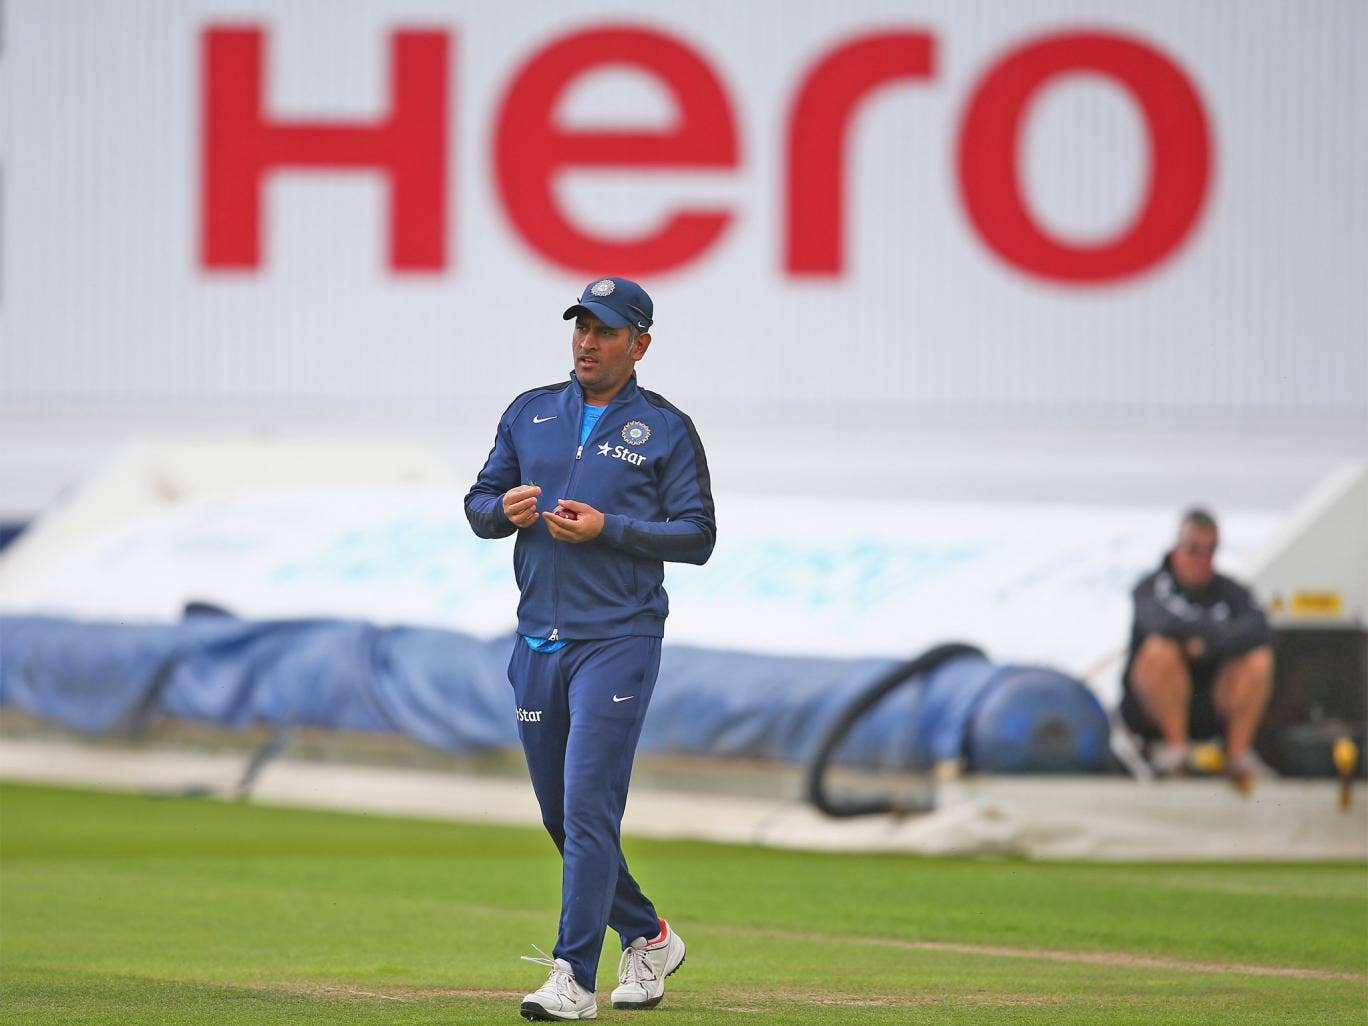 MS Dhoni's team will be keen to improve their record on foreign soil